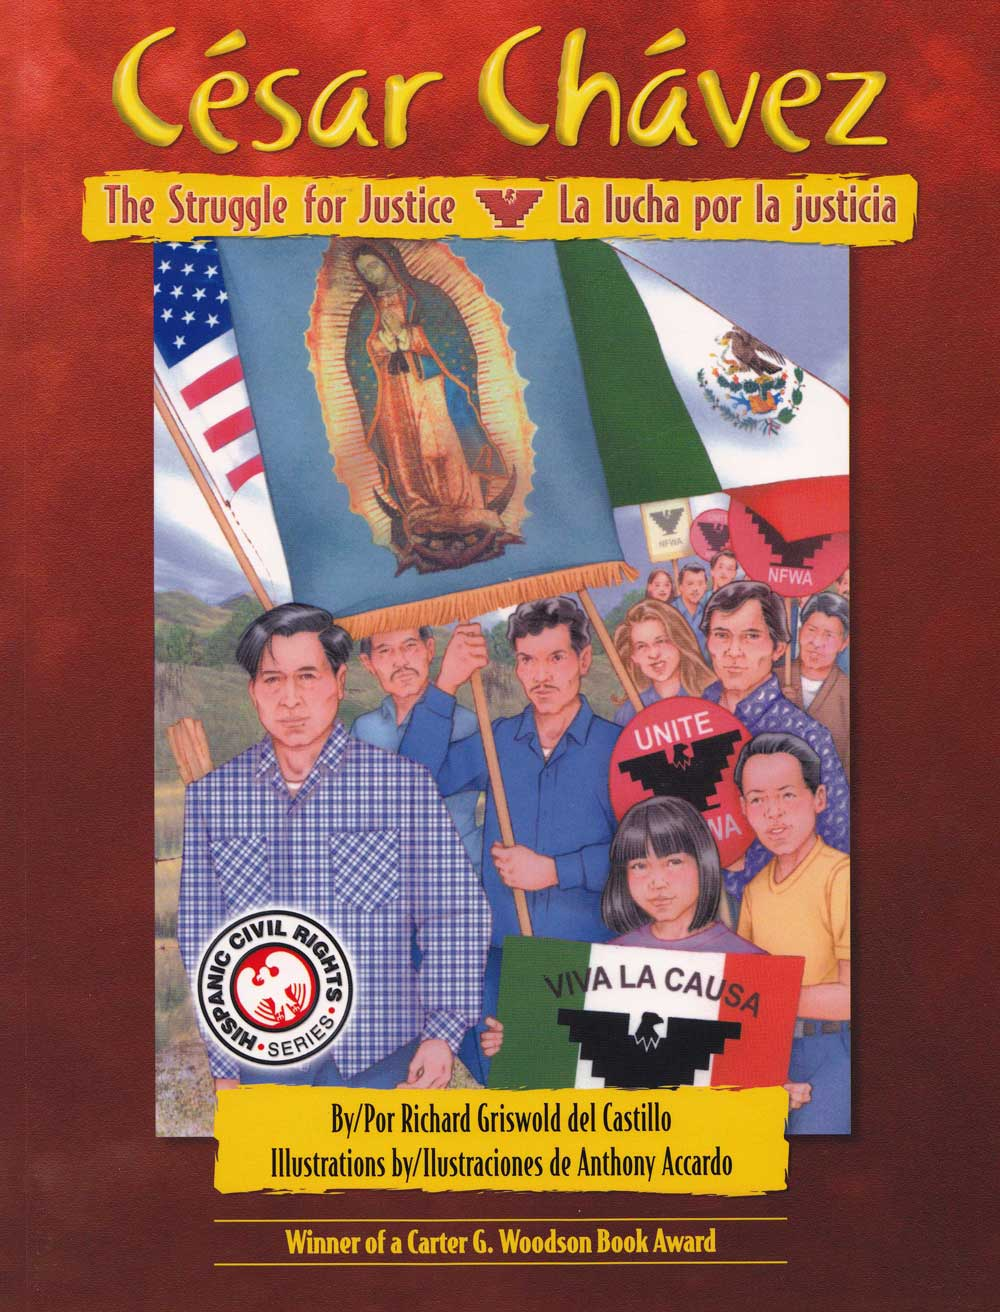 bilingual collection blue del sol books cesar chavez la lucha por la justicia cesar chavez the struggle for justice